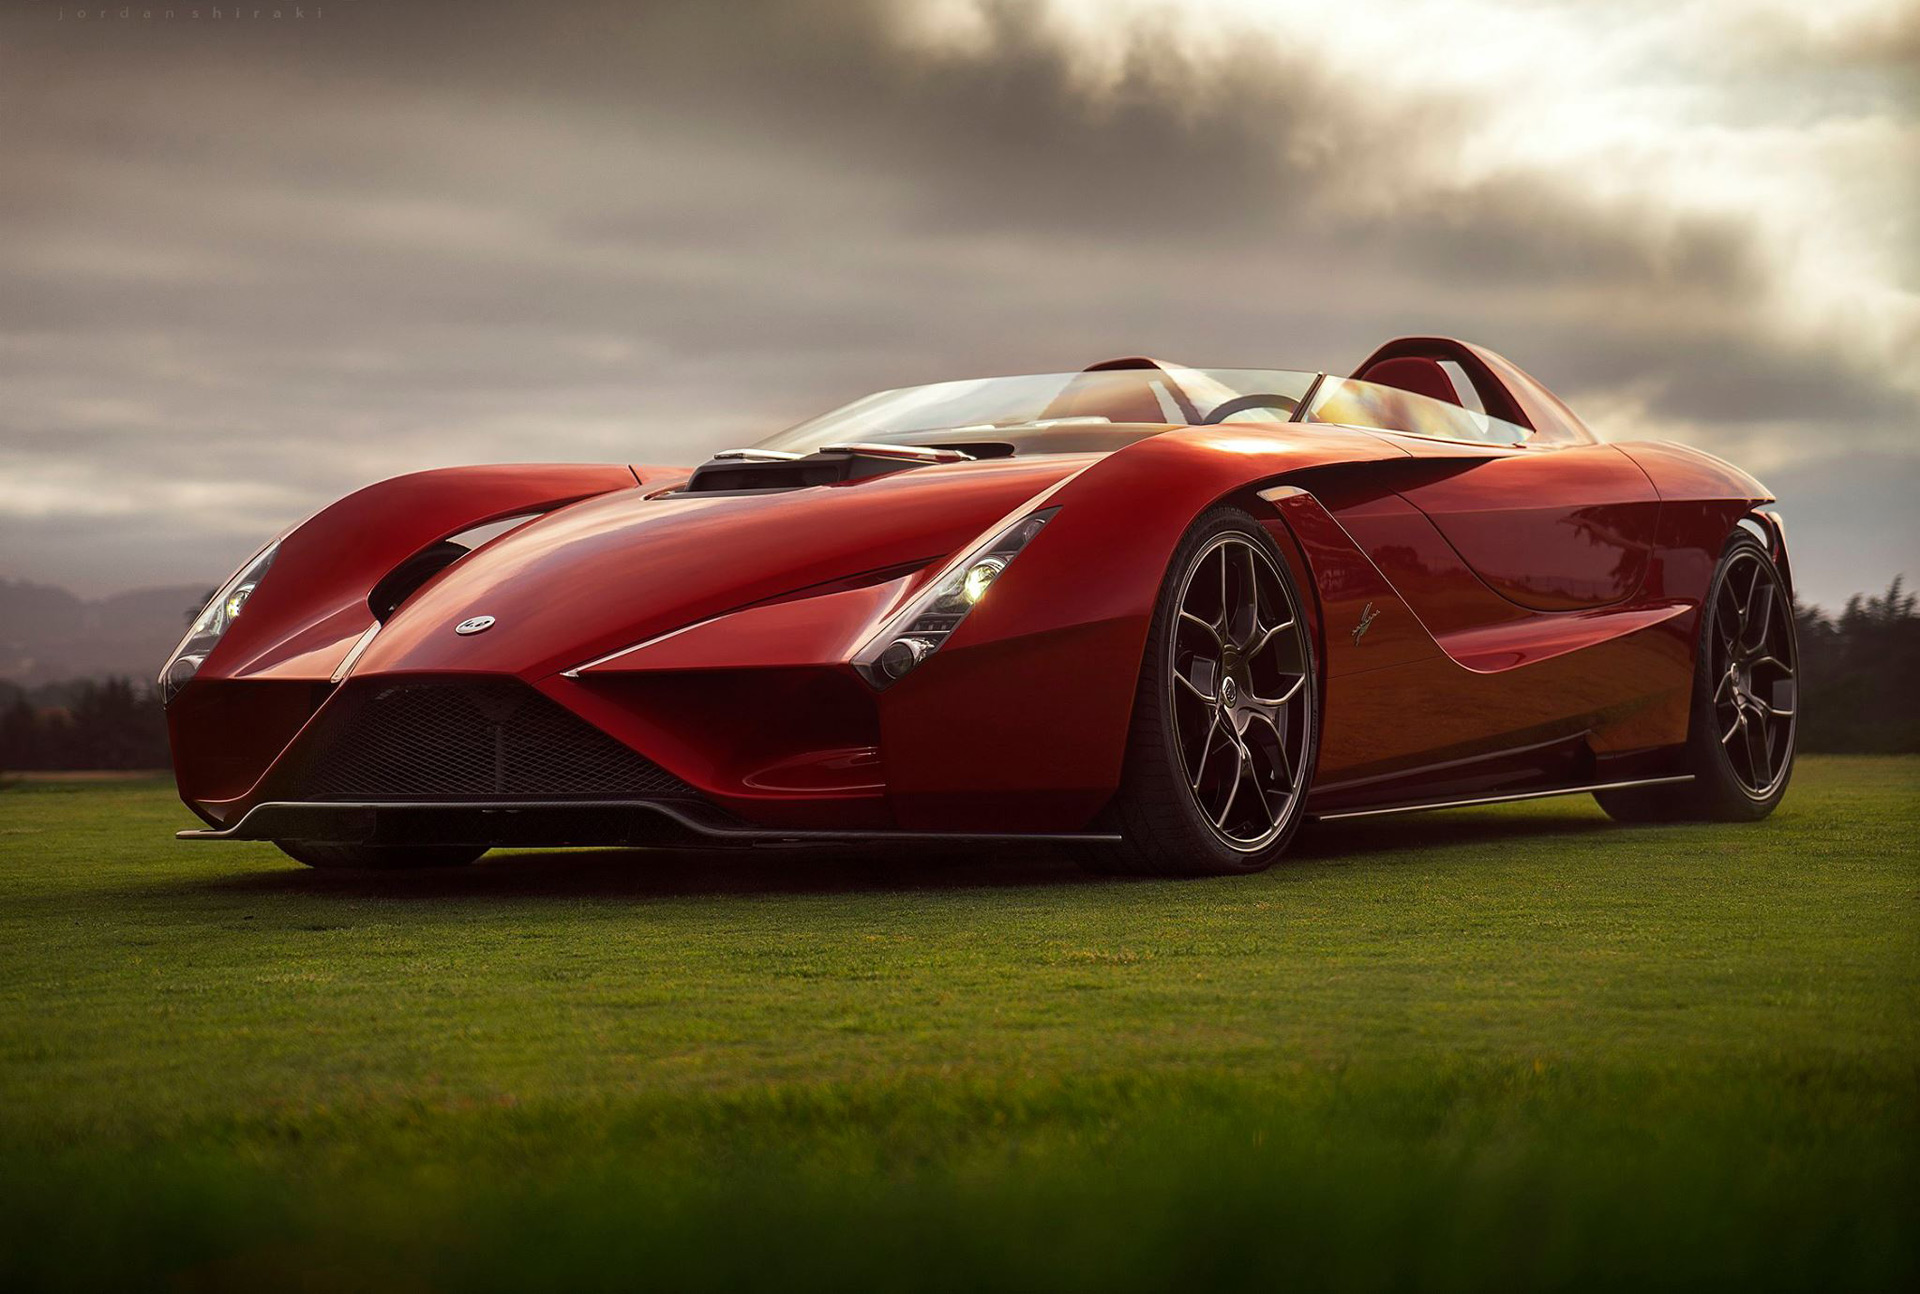 Sports Cars Luxury >> Ken Okuyama Kode57 priced from $2.5 million, limited to 5 cars